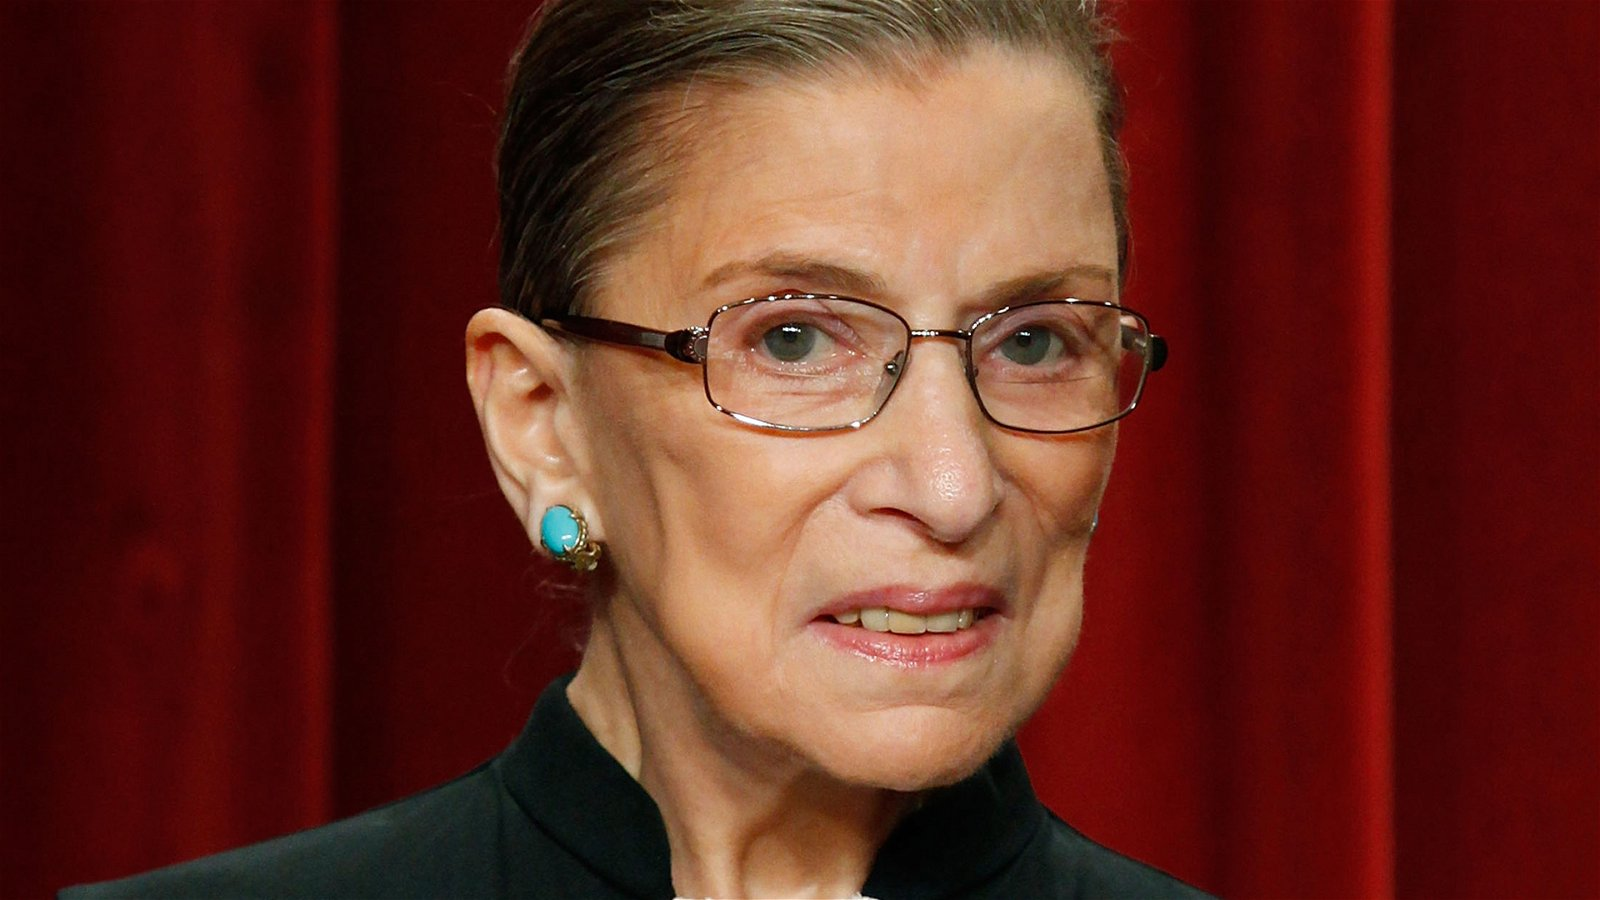 Where Did Ruth Bader Ginsburg Go To College?